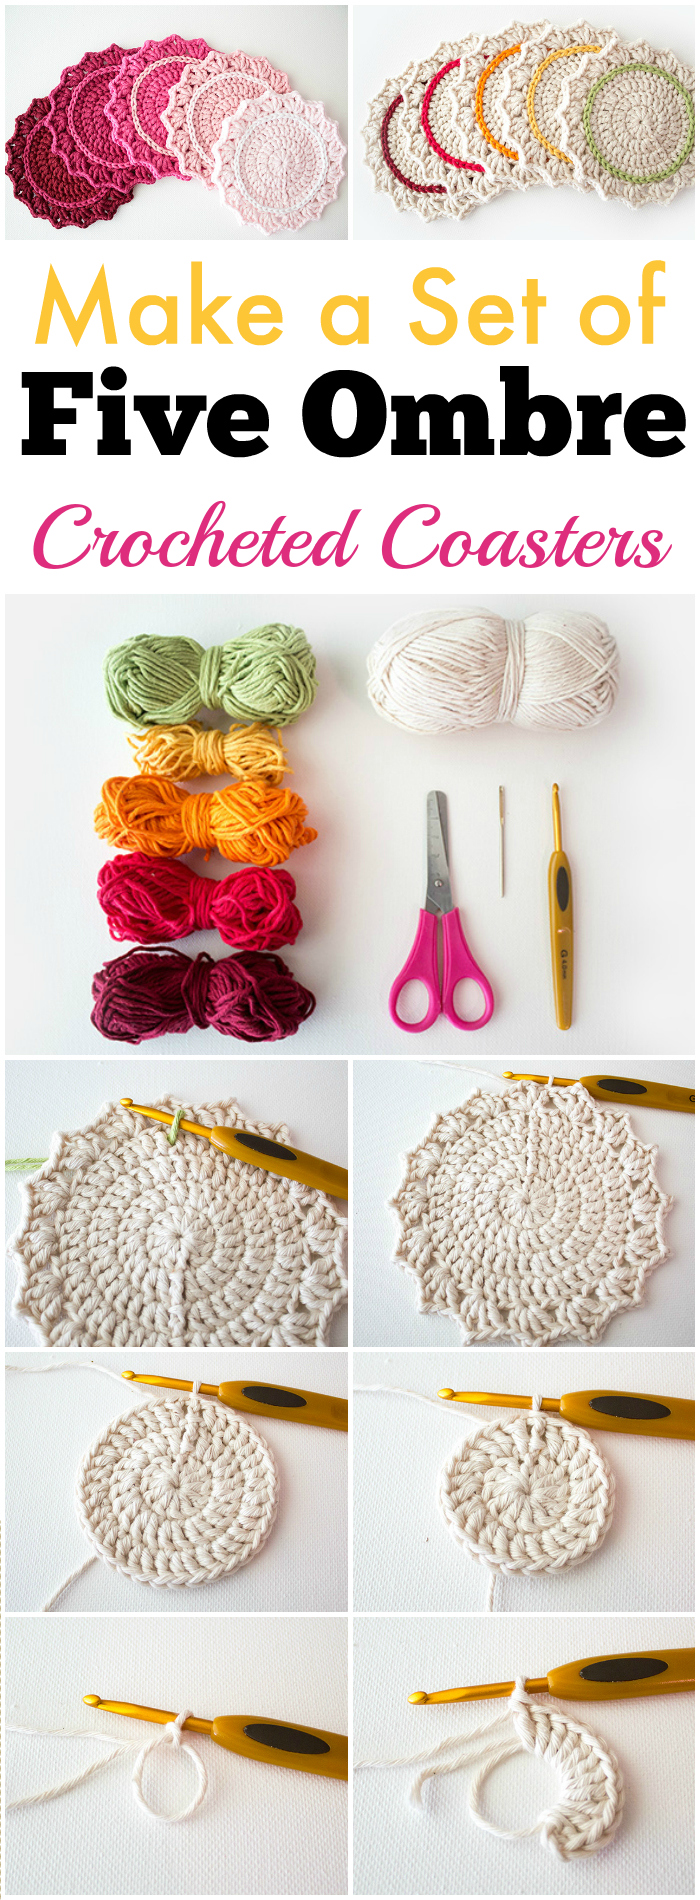 Make a Set of Five Ombre Crocheted Coasters - free crochet coaster patterns | Free Crochet Coaster Patterns